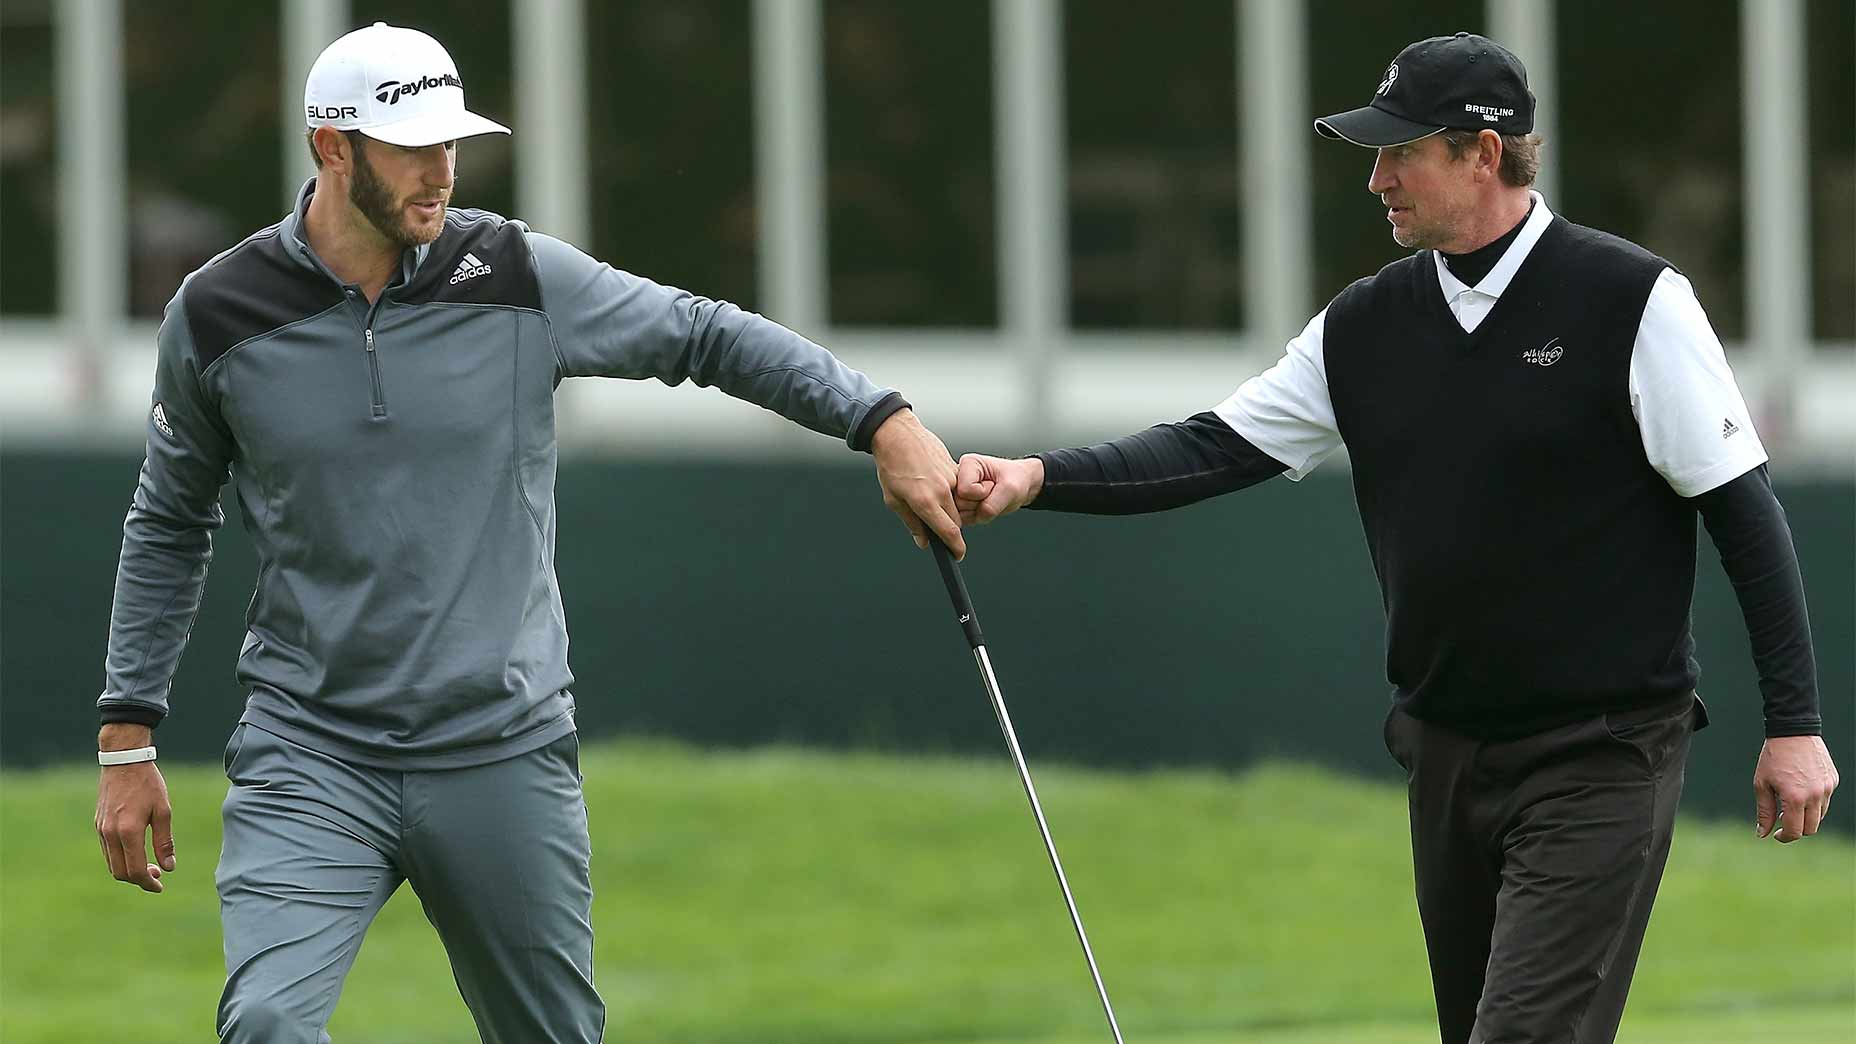 Why Wayne Gretzky told Dustin Johnson he has to be more like Tiger Woods